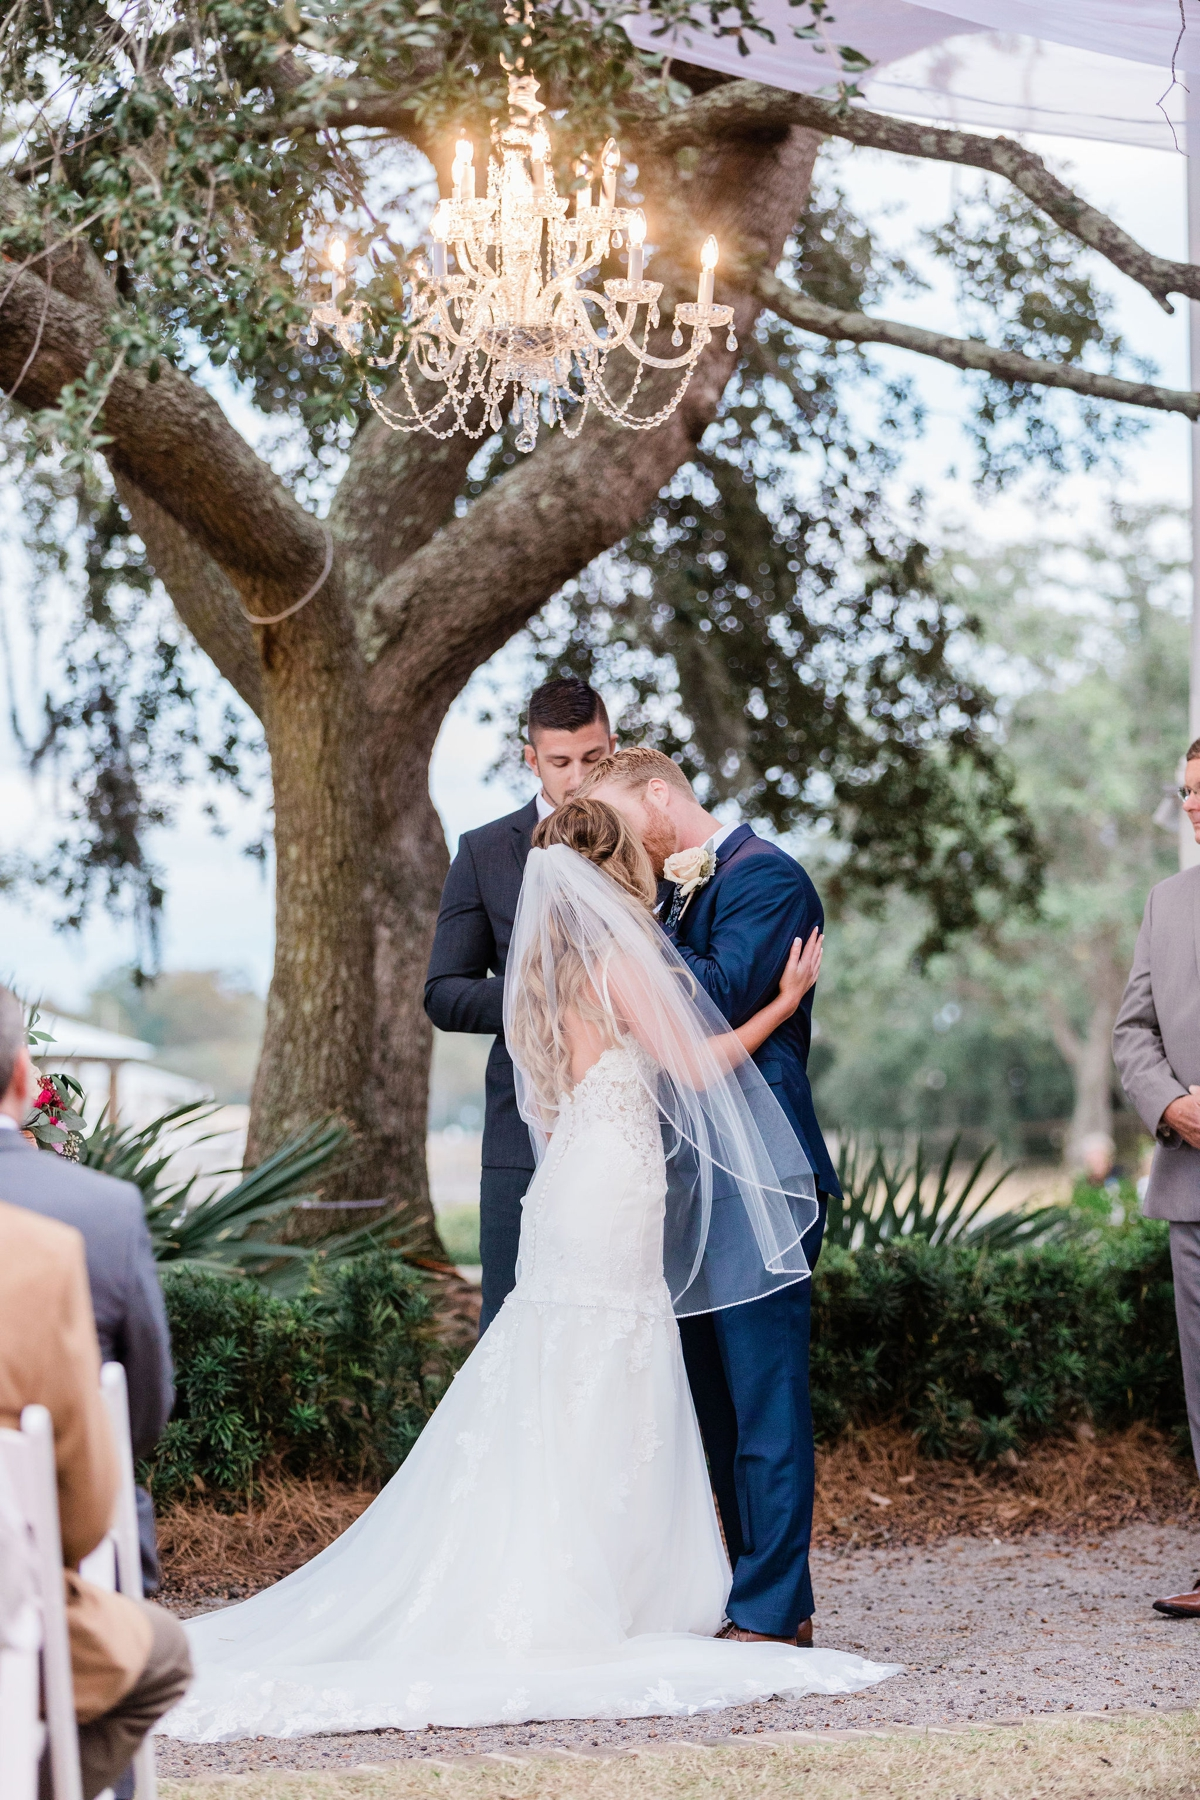 Erin and Kevin's Creek Club Wedding At I'On in Mt. Pleasant, South Carolina